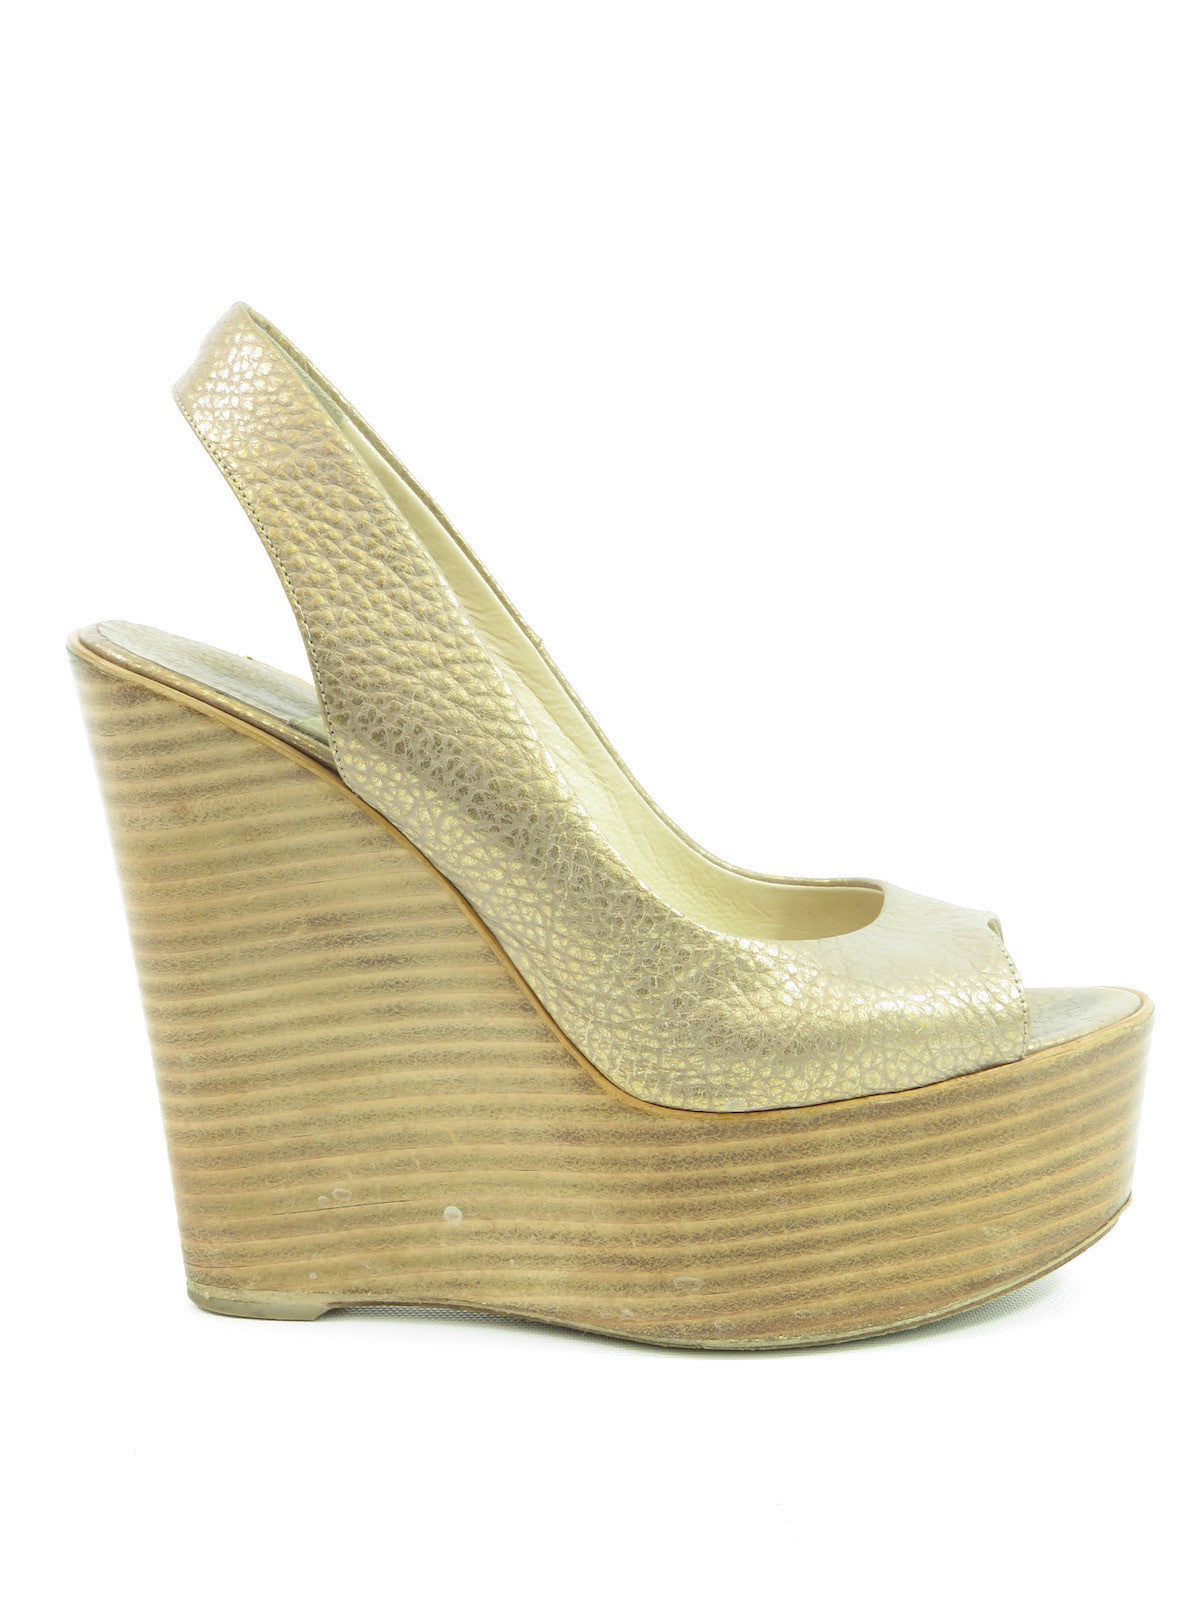 super popular 3e014 4f37f BALDAN Women Gold Peep Toe Slingback Platform Wood Wedge ...